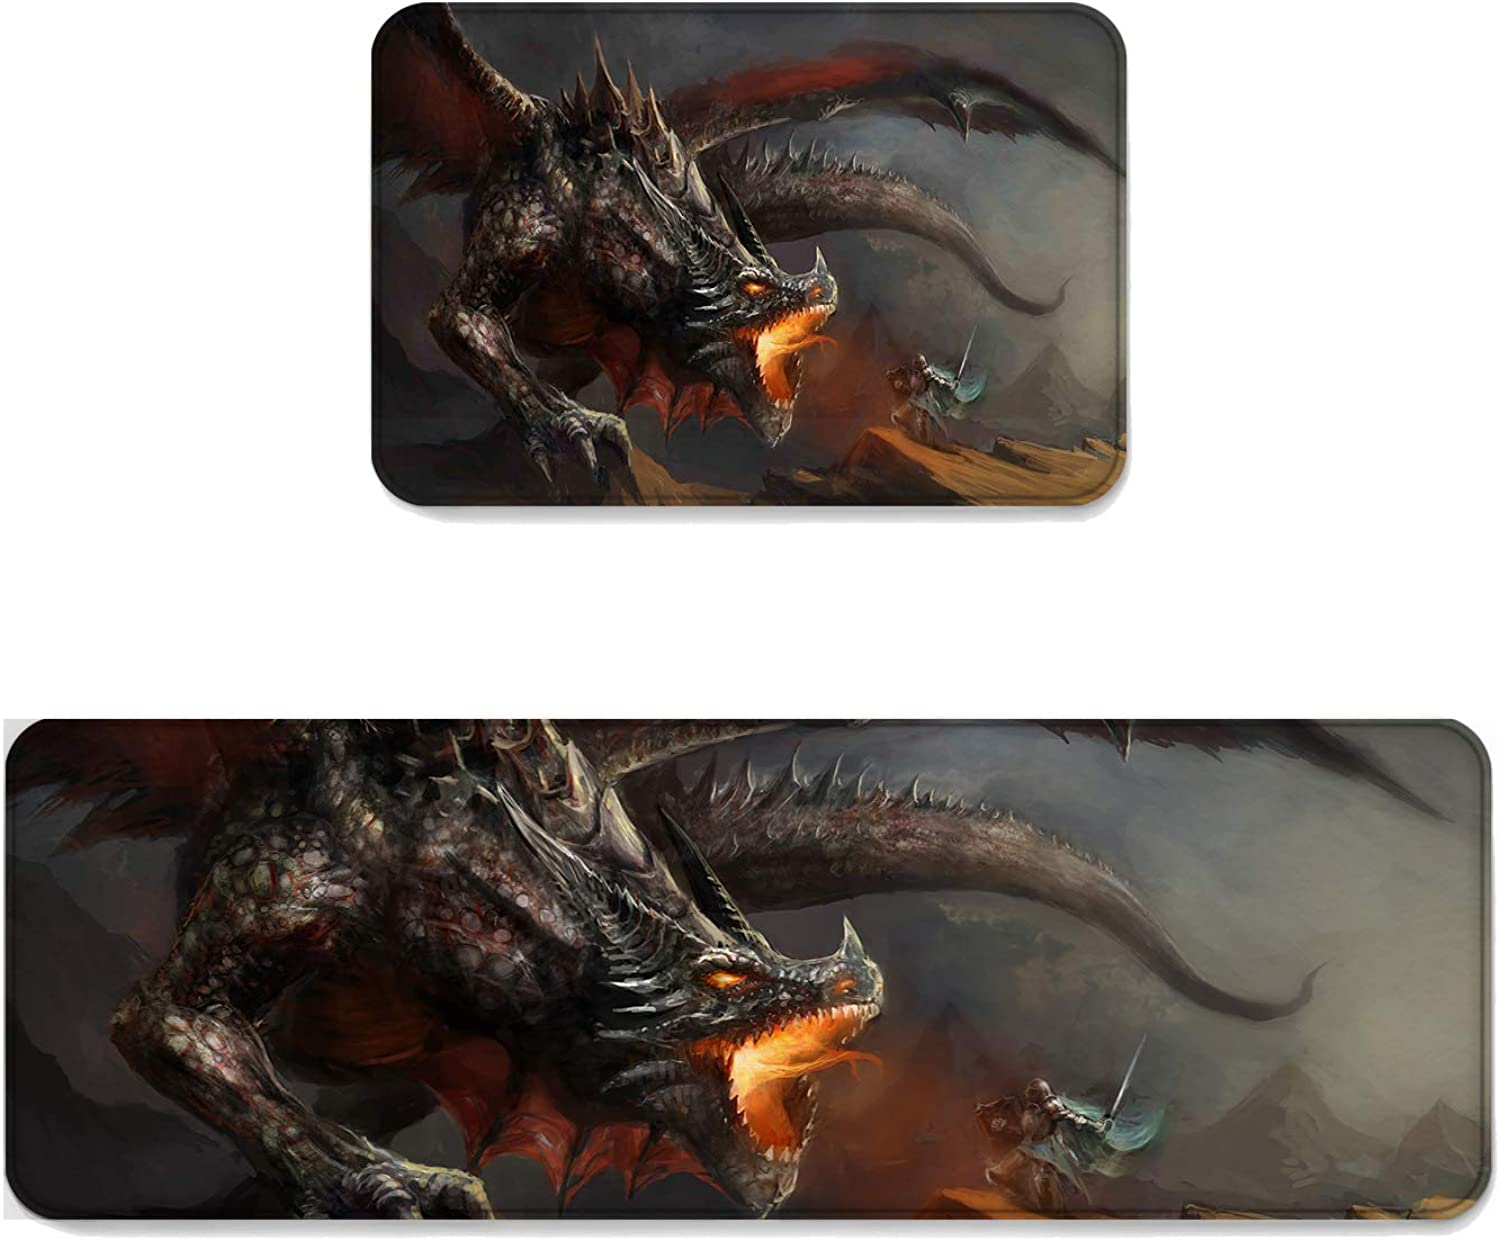 Fantasy Star Kitchen Rug Sets 2 Piece Floor Mats Non-Slip Rubber Backing Area Rugs Middle Ages Dragon Warrior Doormat Washable Carpet Inside Door Mat Pad Sets (19.7  x 31.5 +19.7  x 47.2 )